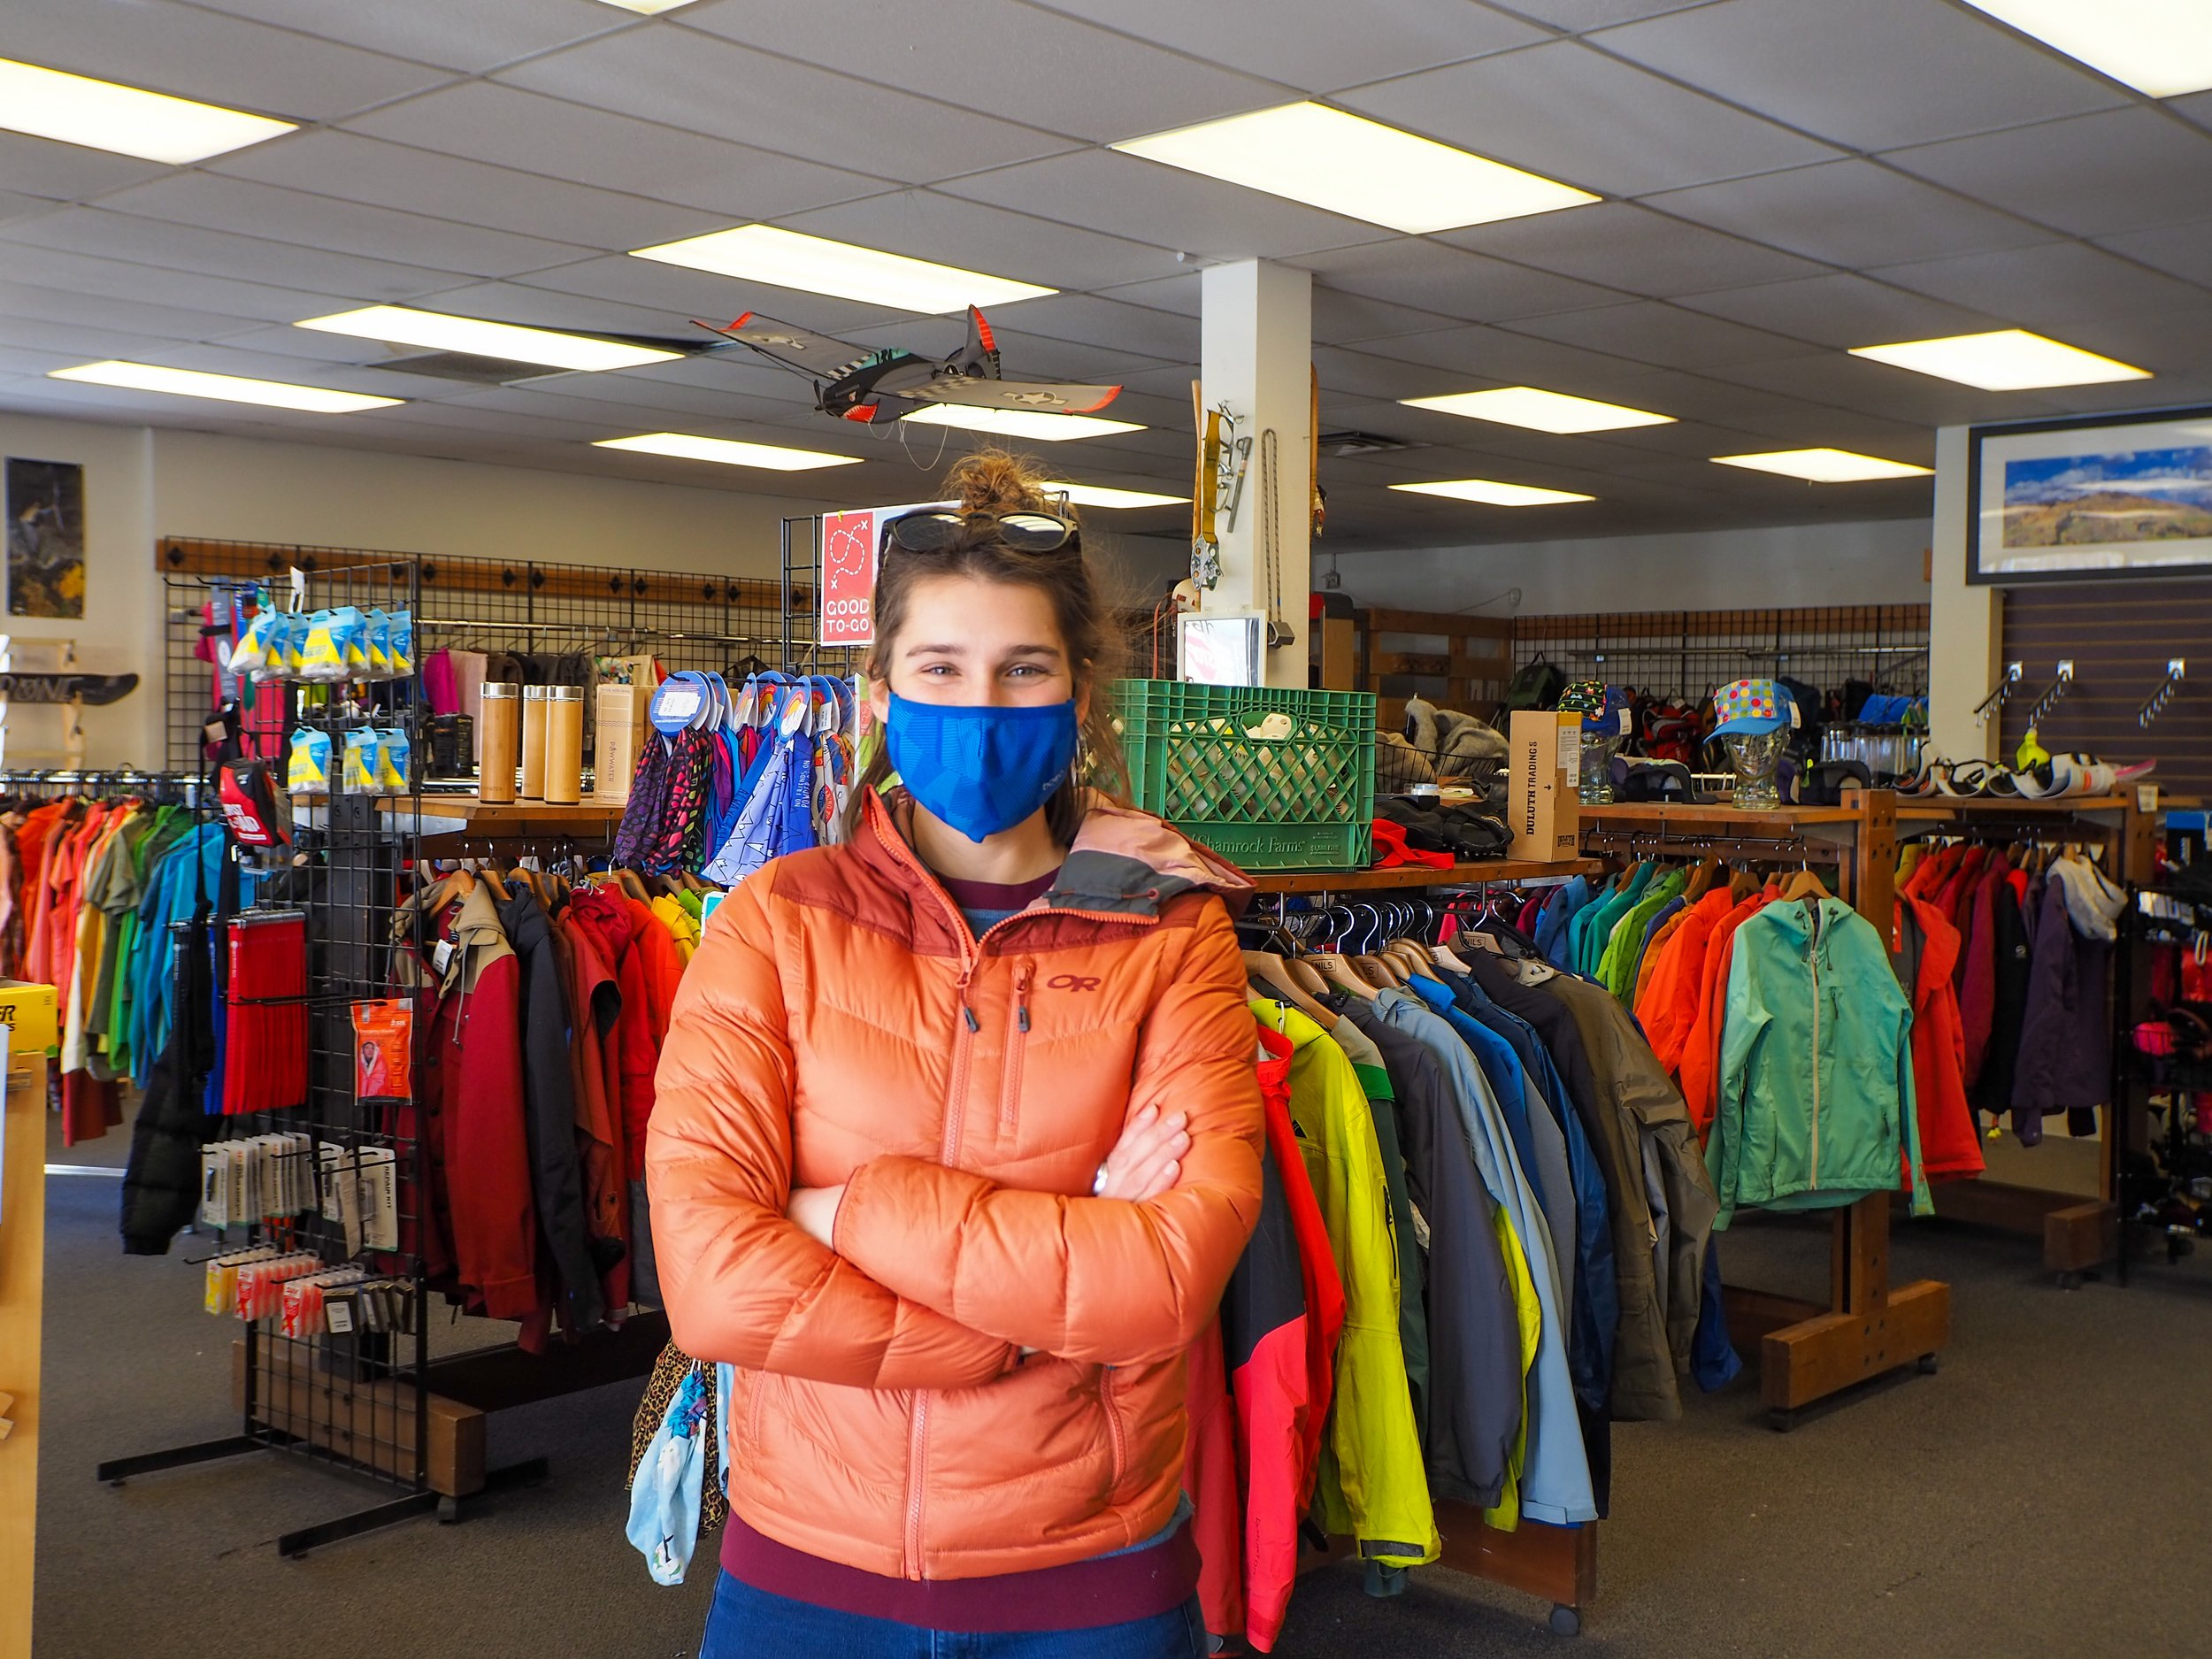 Aisha Weinhold has owned and operated Ragged Mountain Sports for ten years in the Sopris Shopping Center. Photo by Raleigh Burleigh.